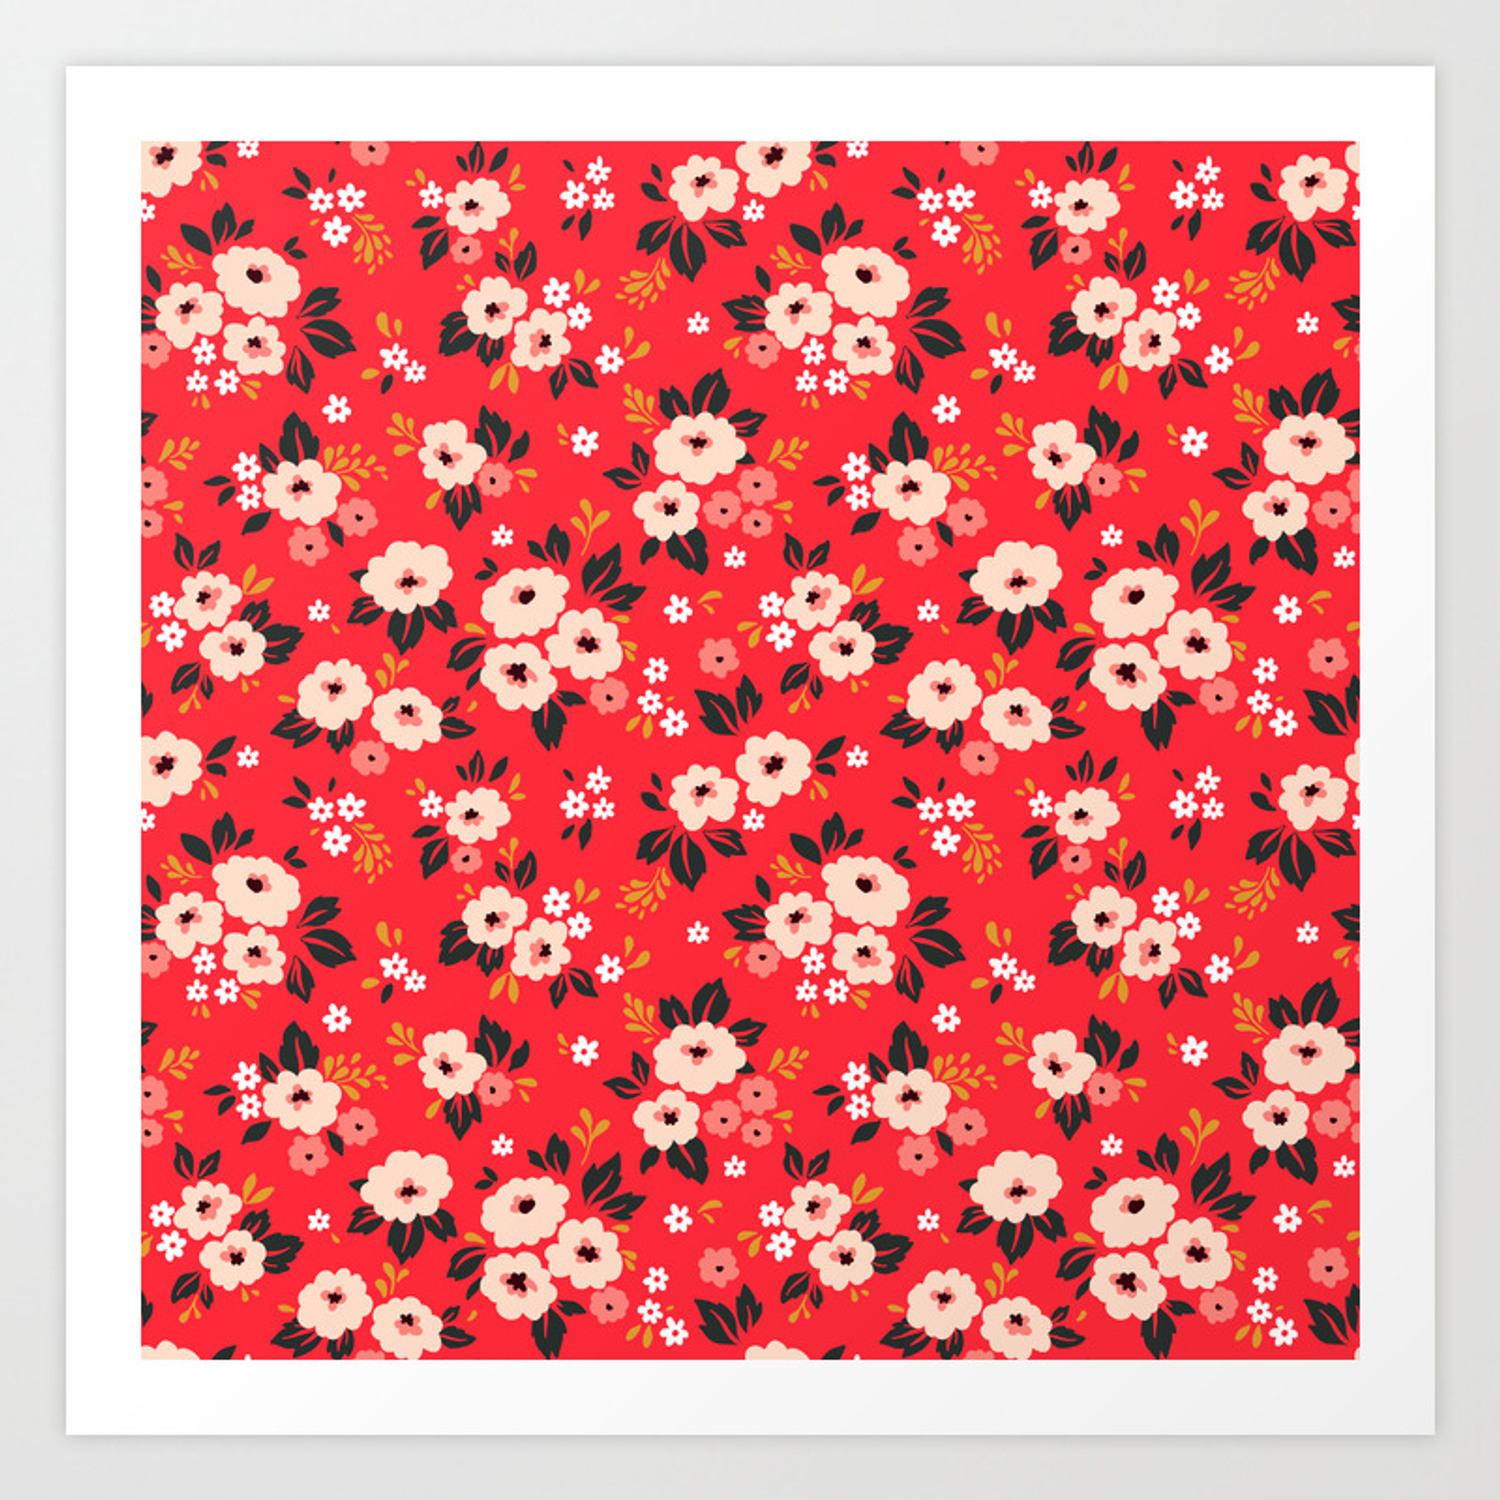 05 Ditsy Floral Pattern Red Background White And Pink Flowers